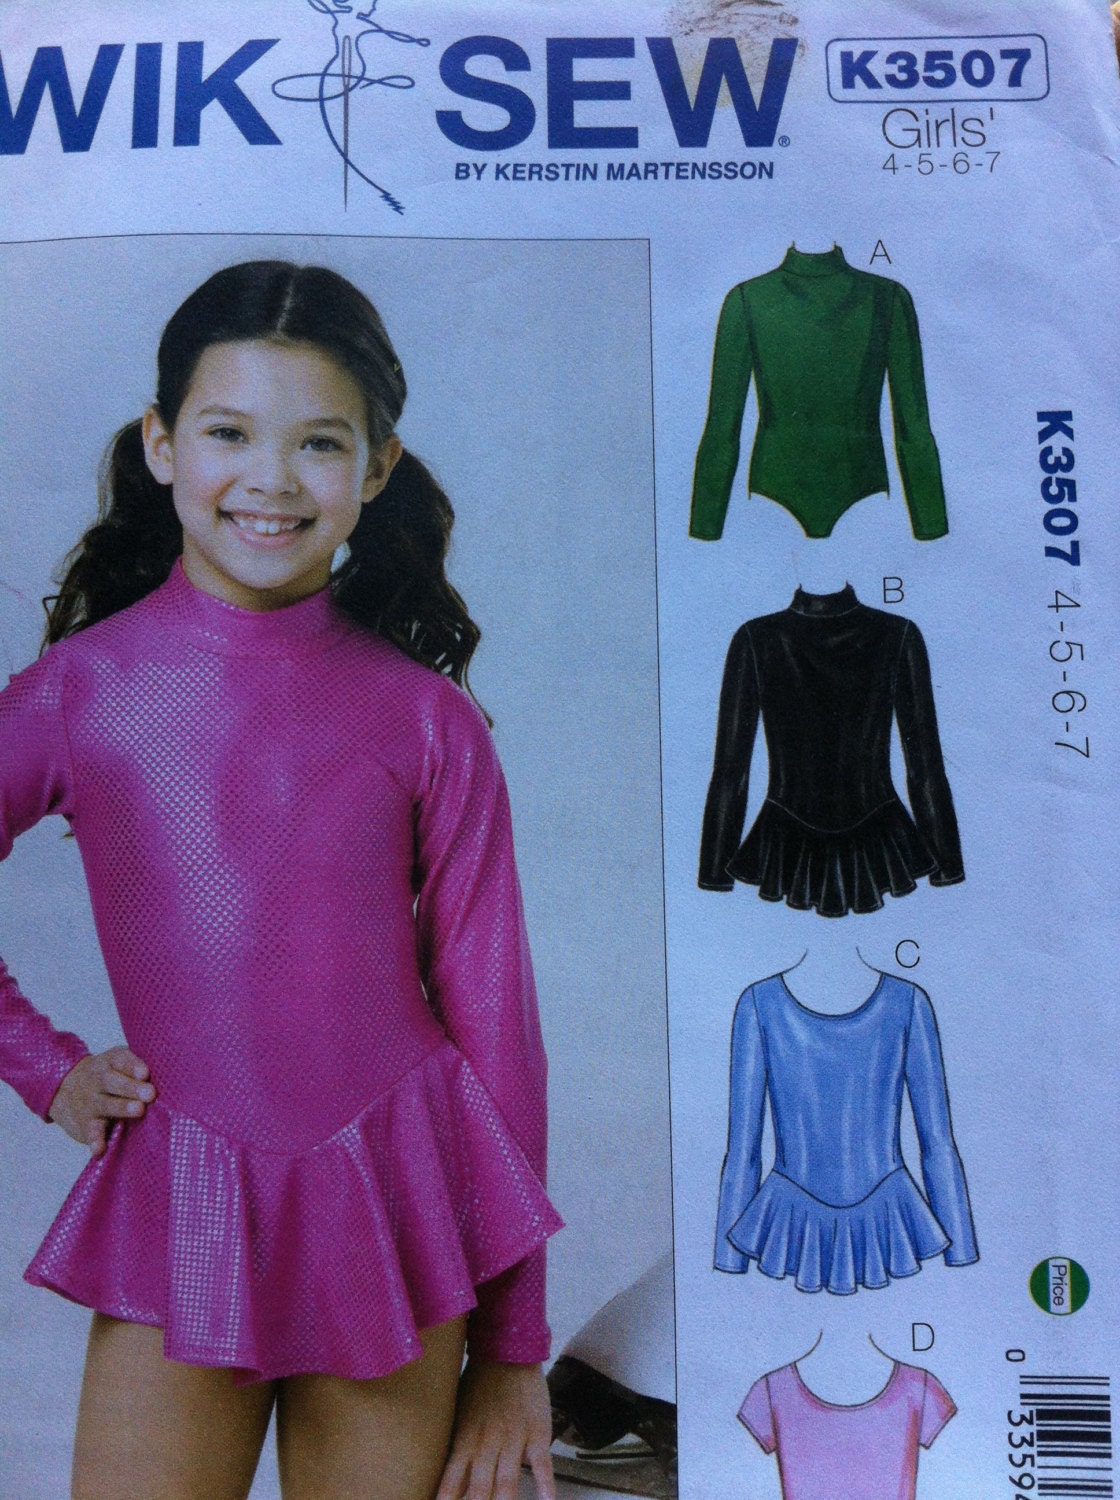 ballet hair styles kwik sew no 3507 leotards size 4 5 6 7 leotard knit 3507